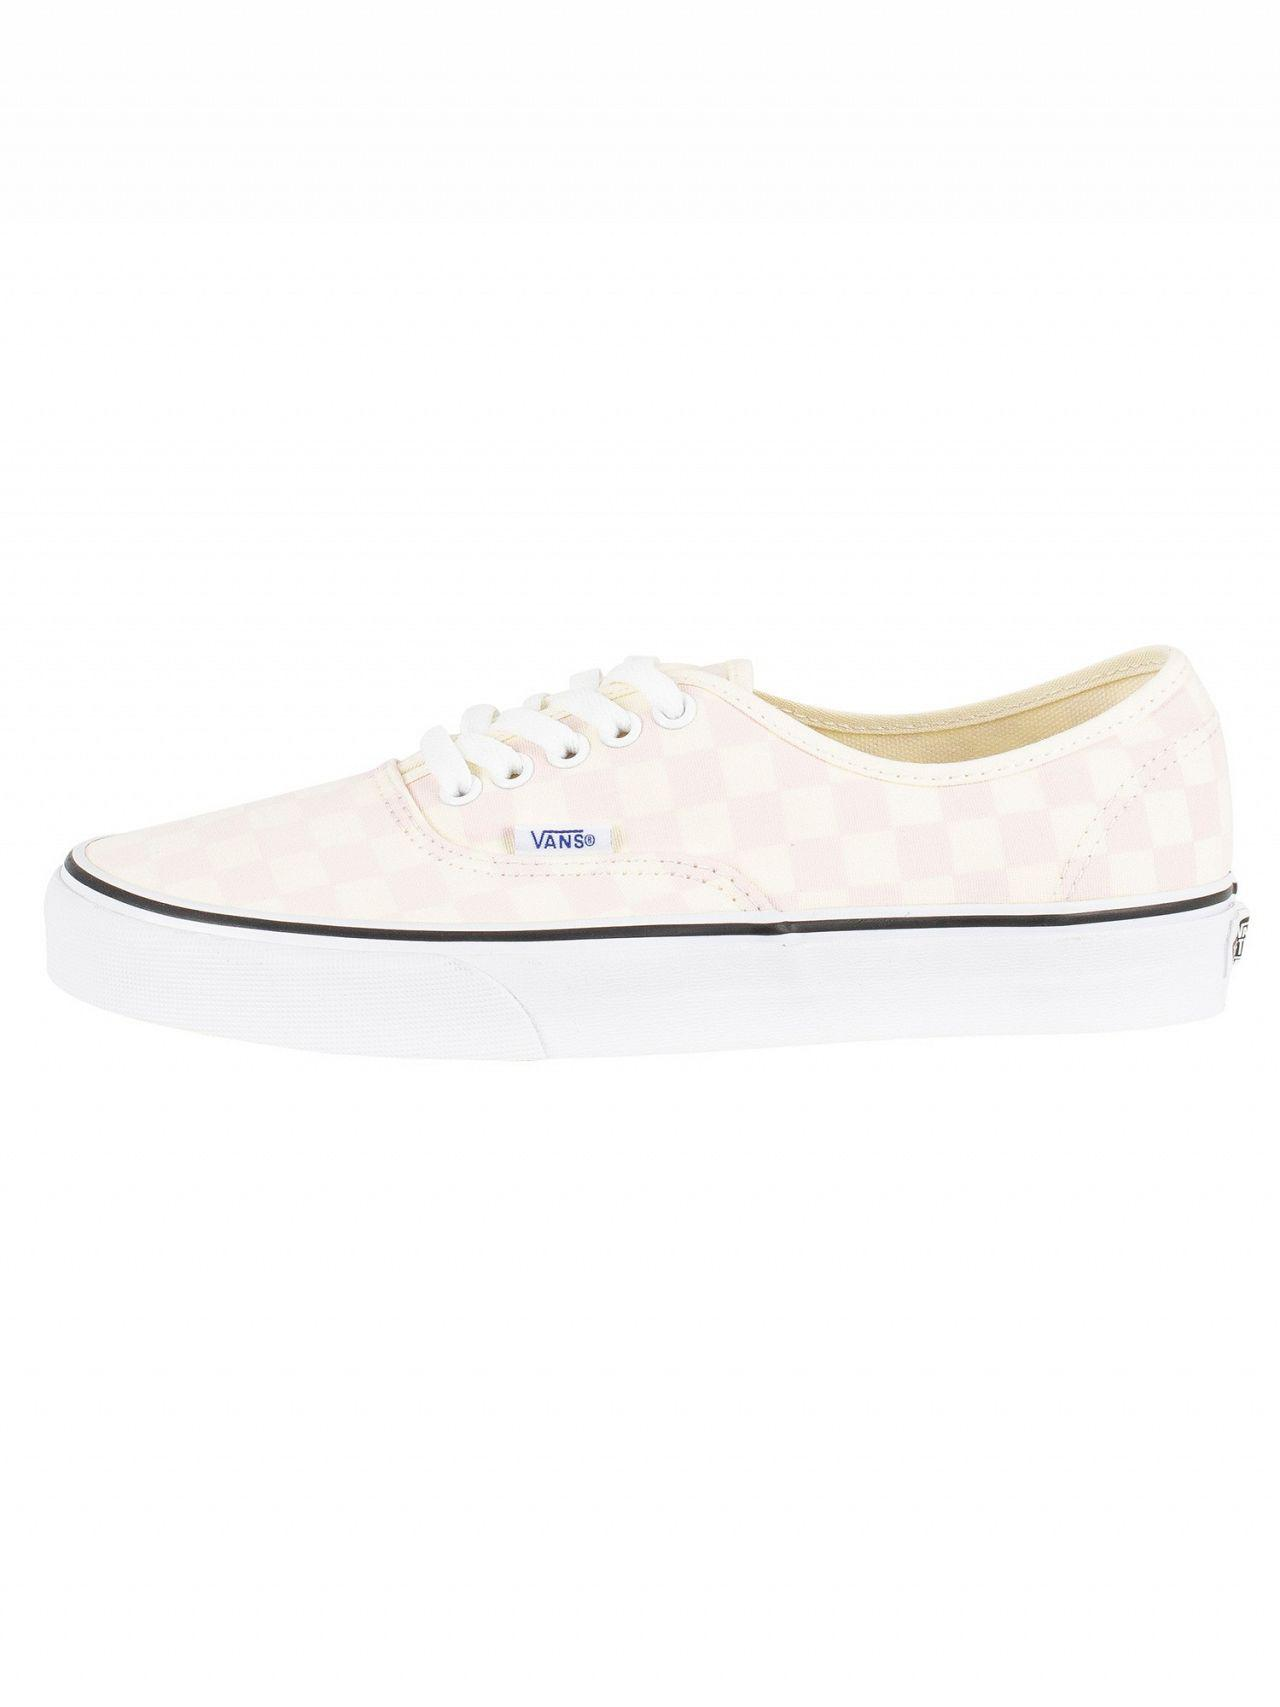 Vans - White Chalk Pink Authentic Checkerboard Trainers for Men - Lyst.  View fullscreen cfb63b705